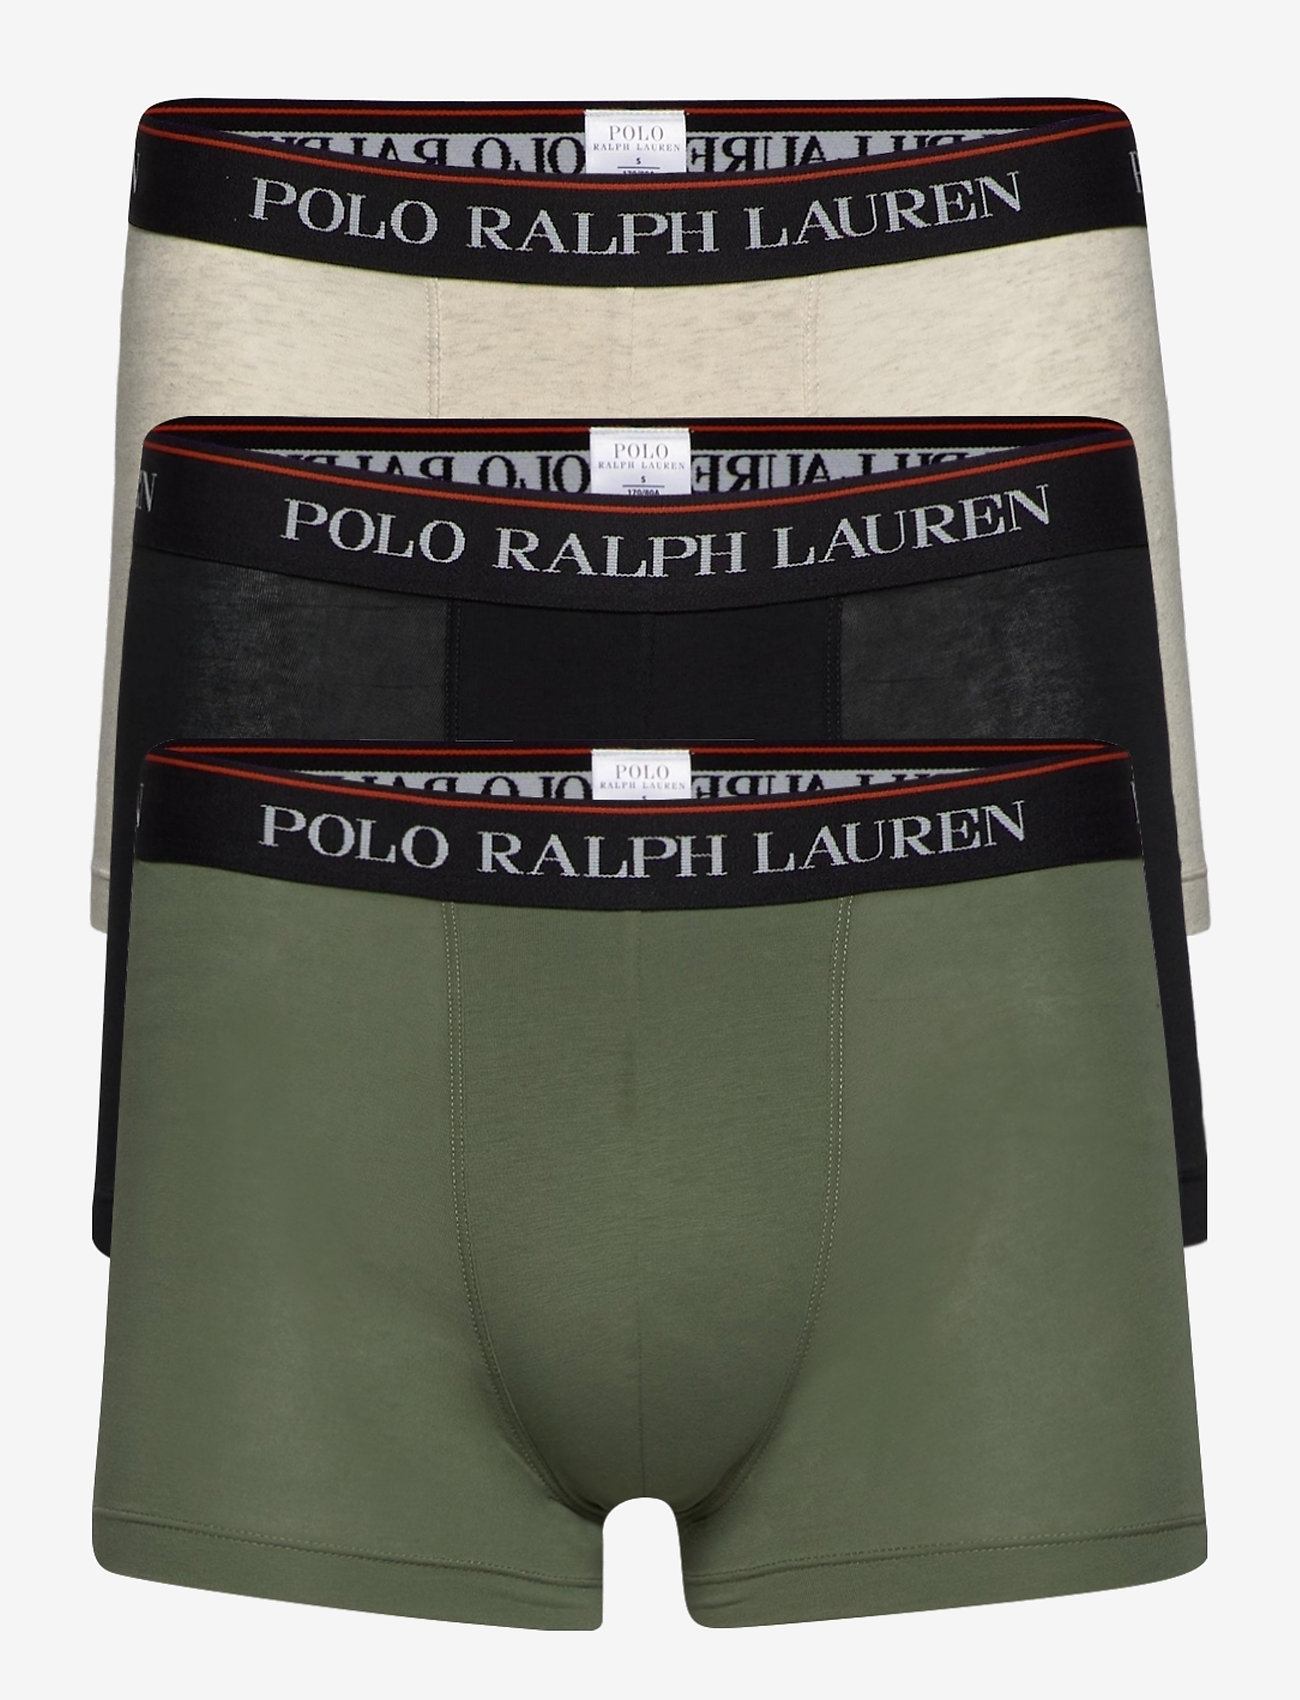 Polo Ralph Lauren Underwear - Classic Stretch-Cotton Trunk 3-Pack - boxers - 3pk blk/crgo gree - 0